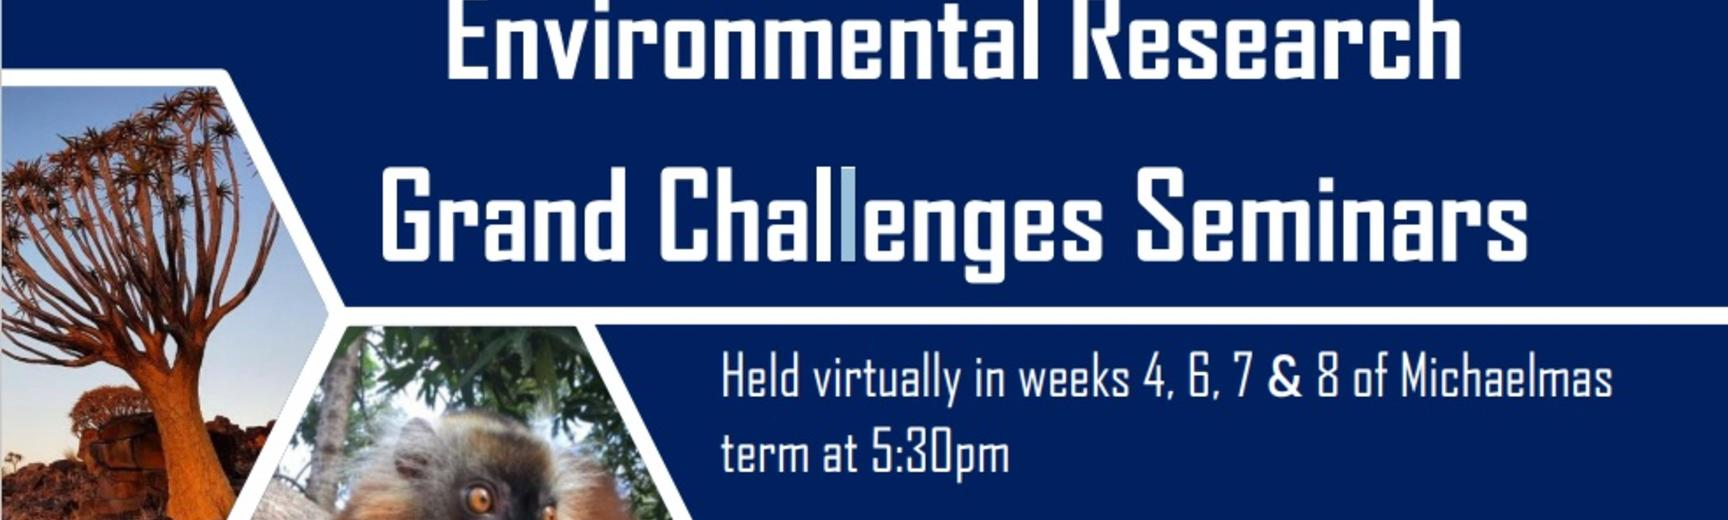 grand challenges website banner